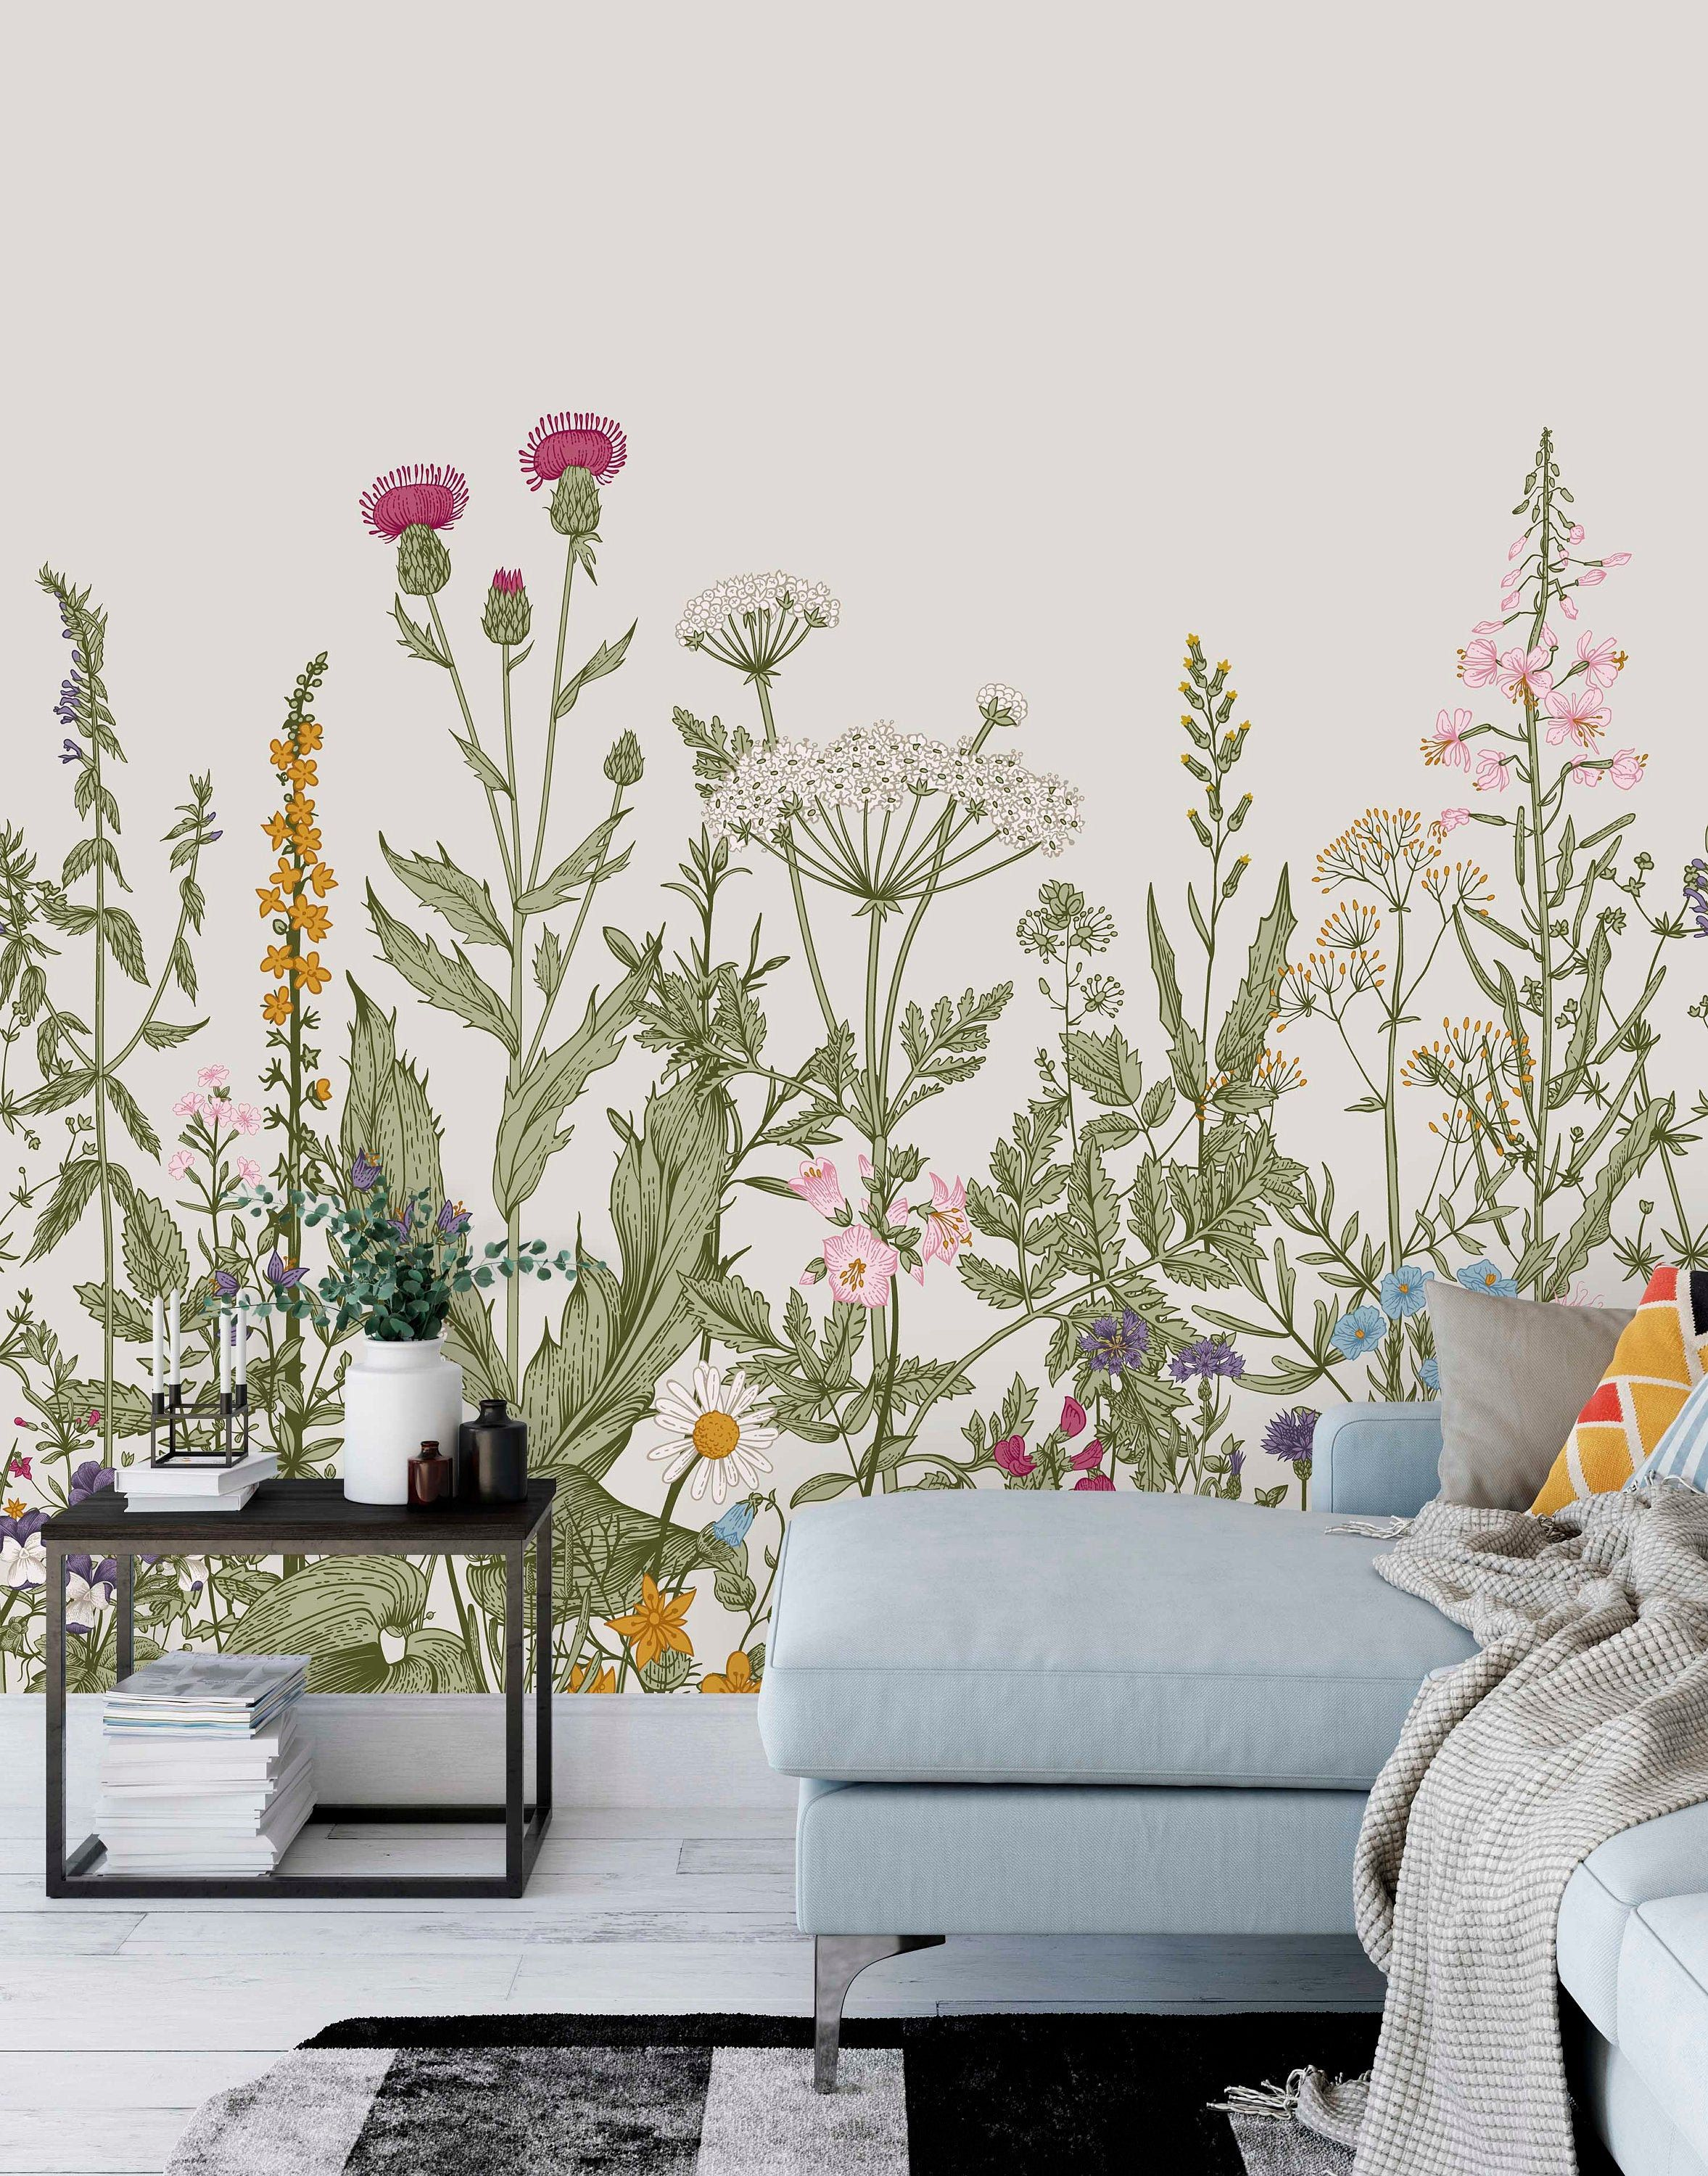 Large Wildflower Mural Removable Self Adhesive Wallpaper Fabric Peel Stick Wallpaper Mural Floral Wallcovering By Green Planet Print Wildflower Mural Mural Wallpaper Wall Murals